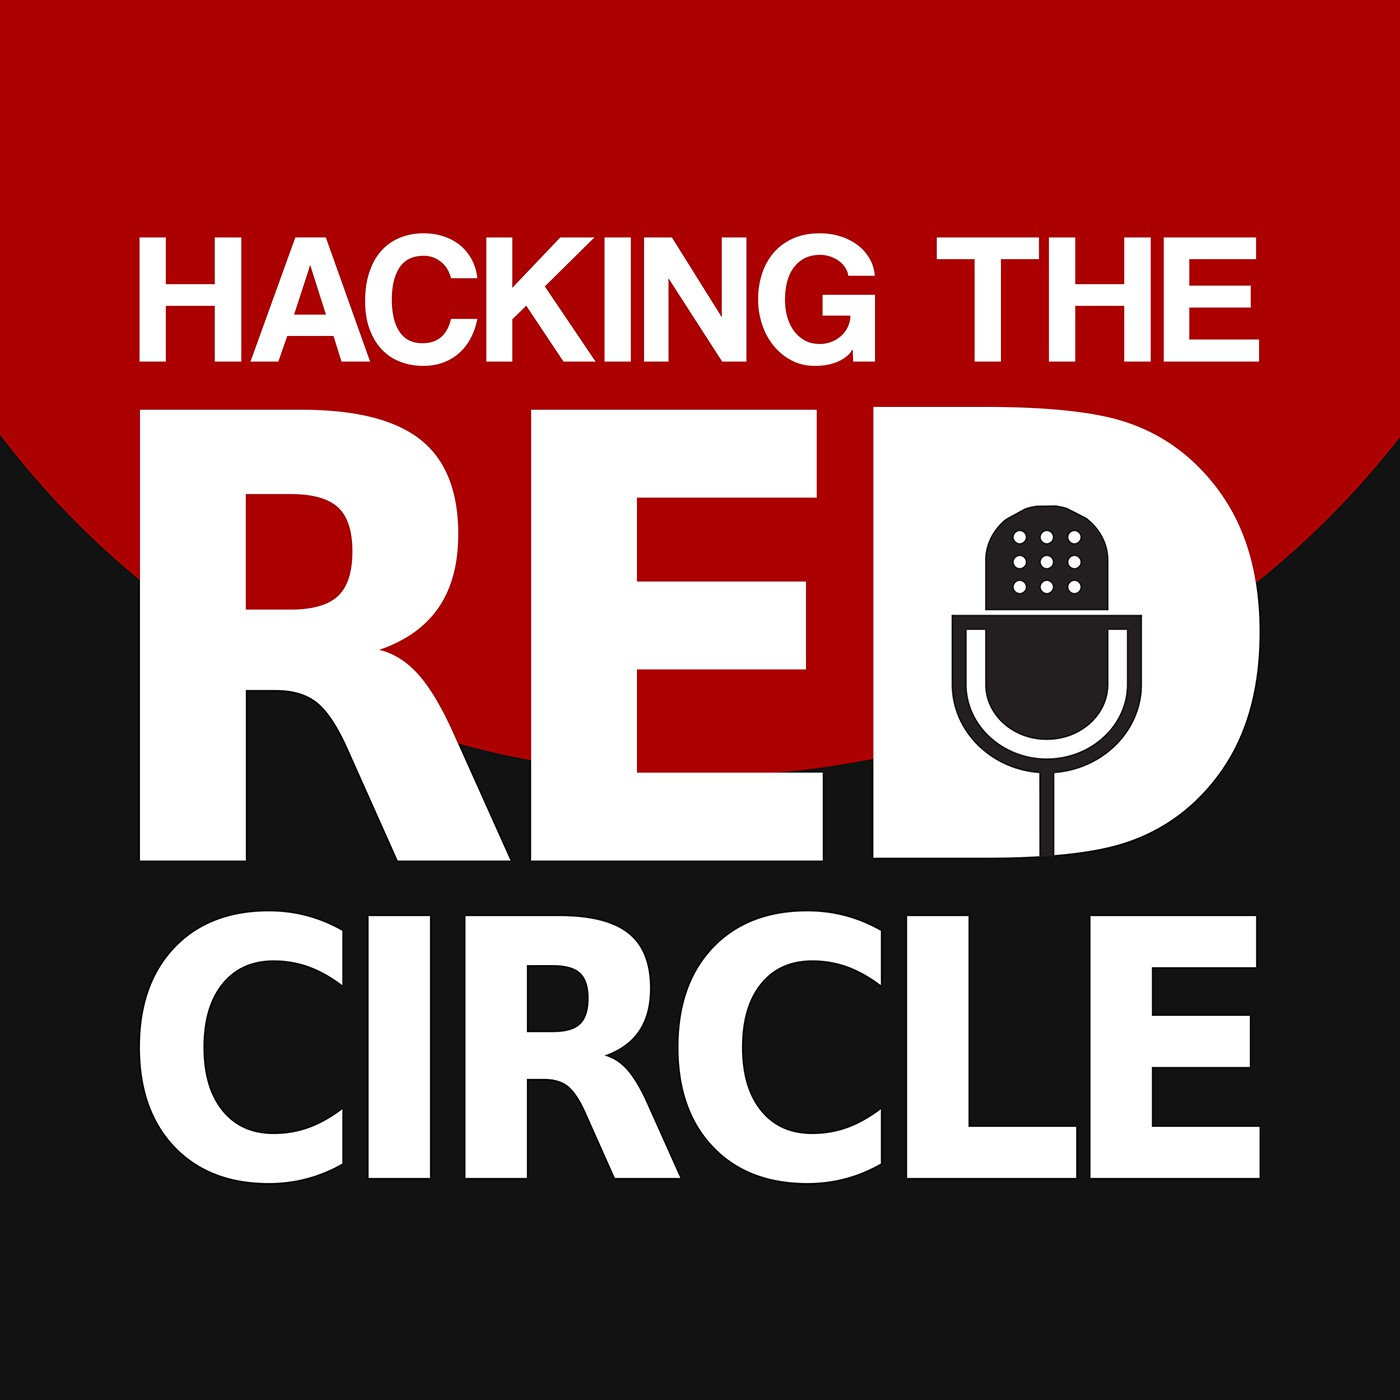 Hacking the Red Circle - Podcast Logo